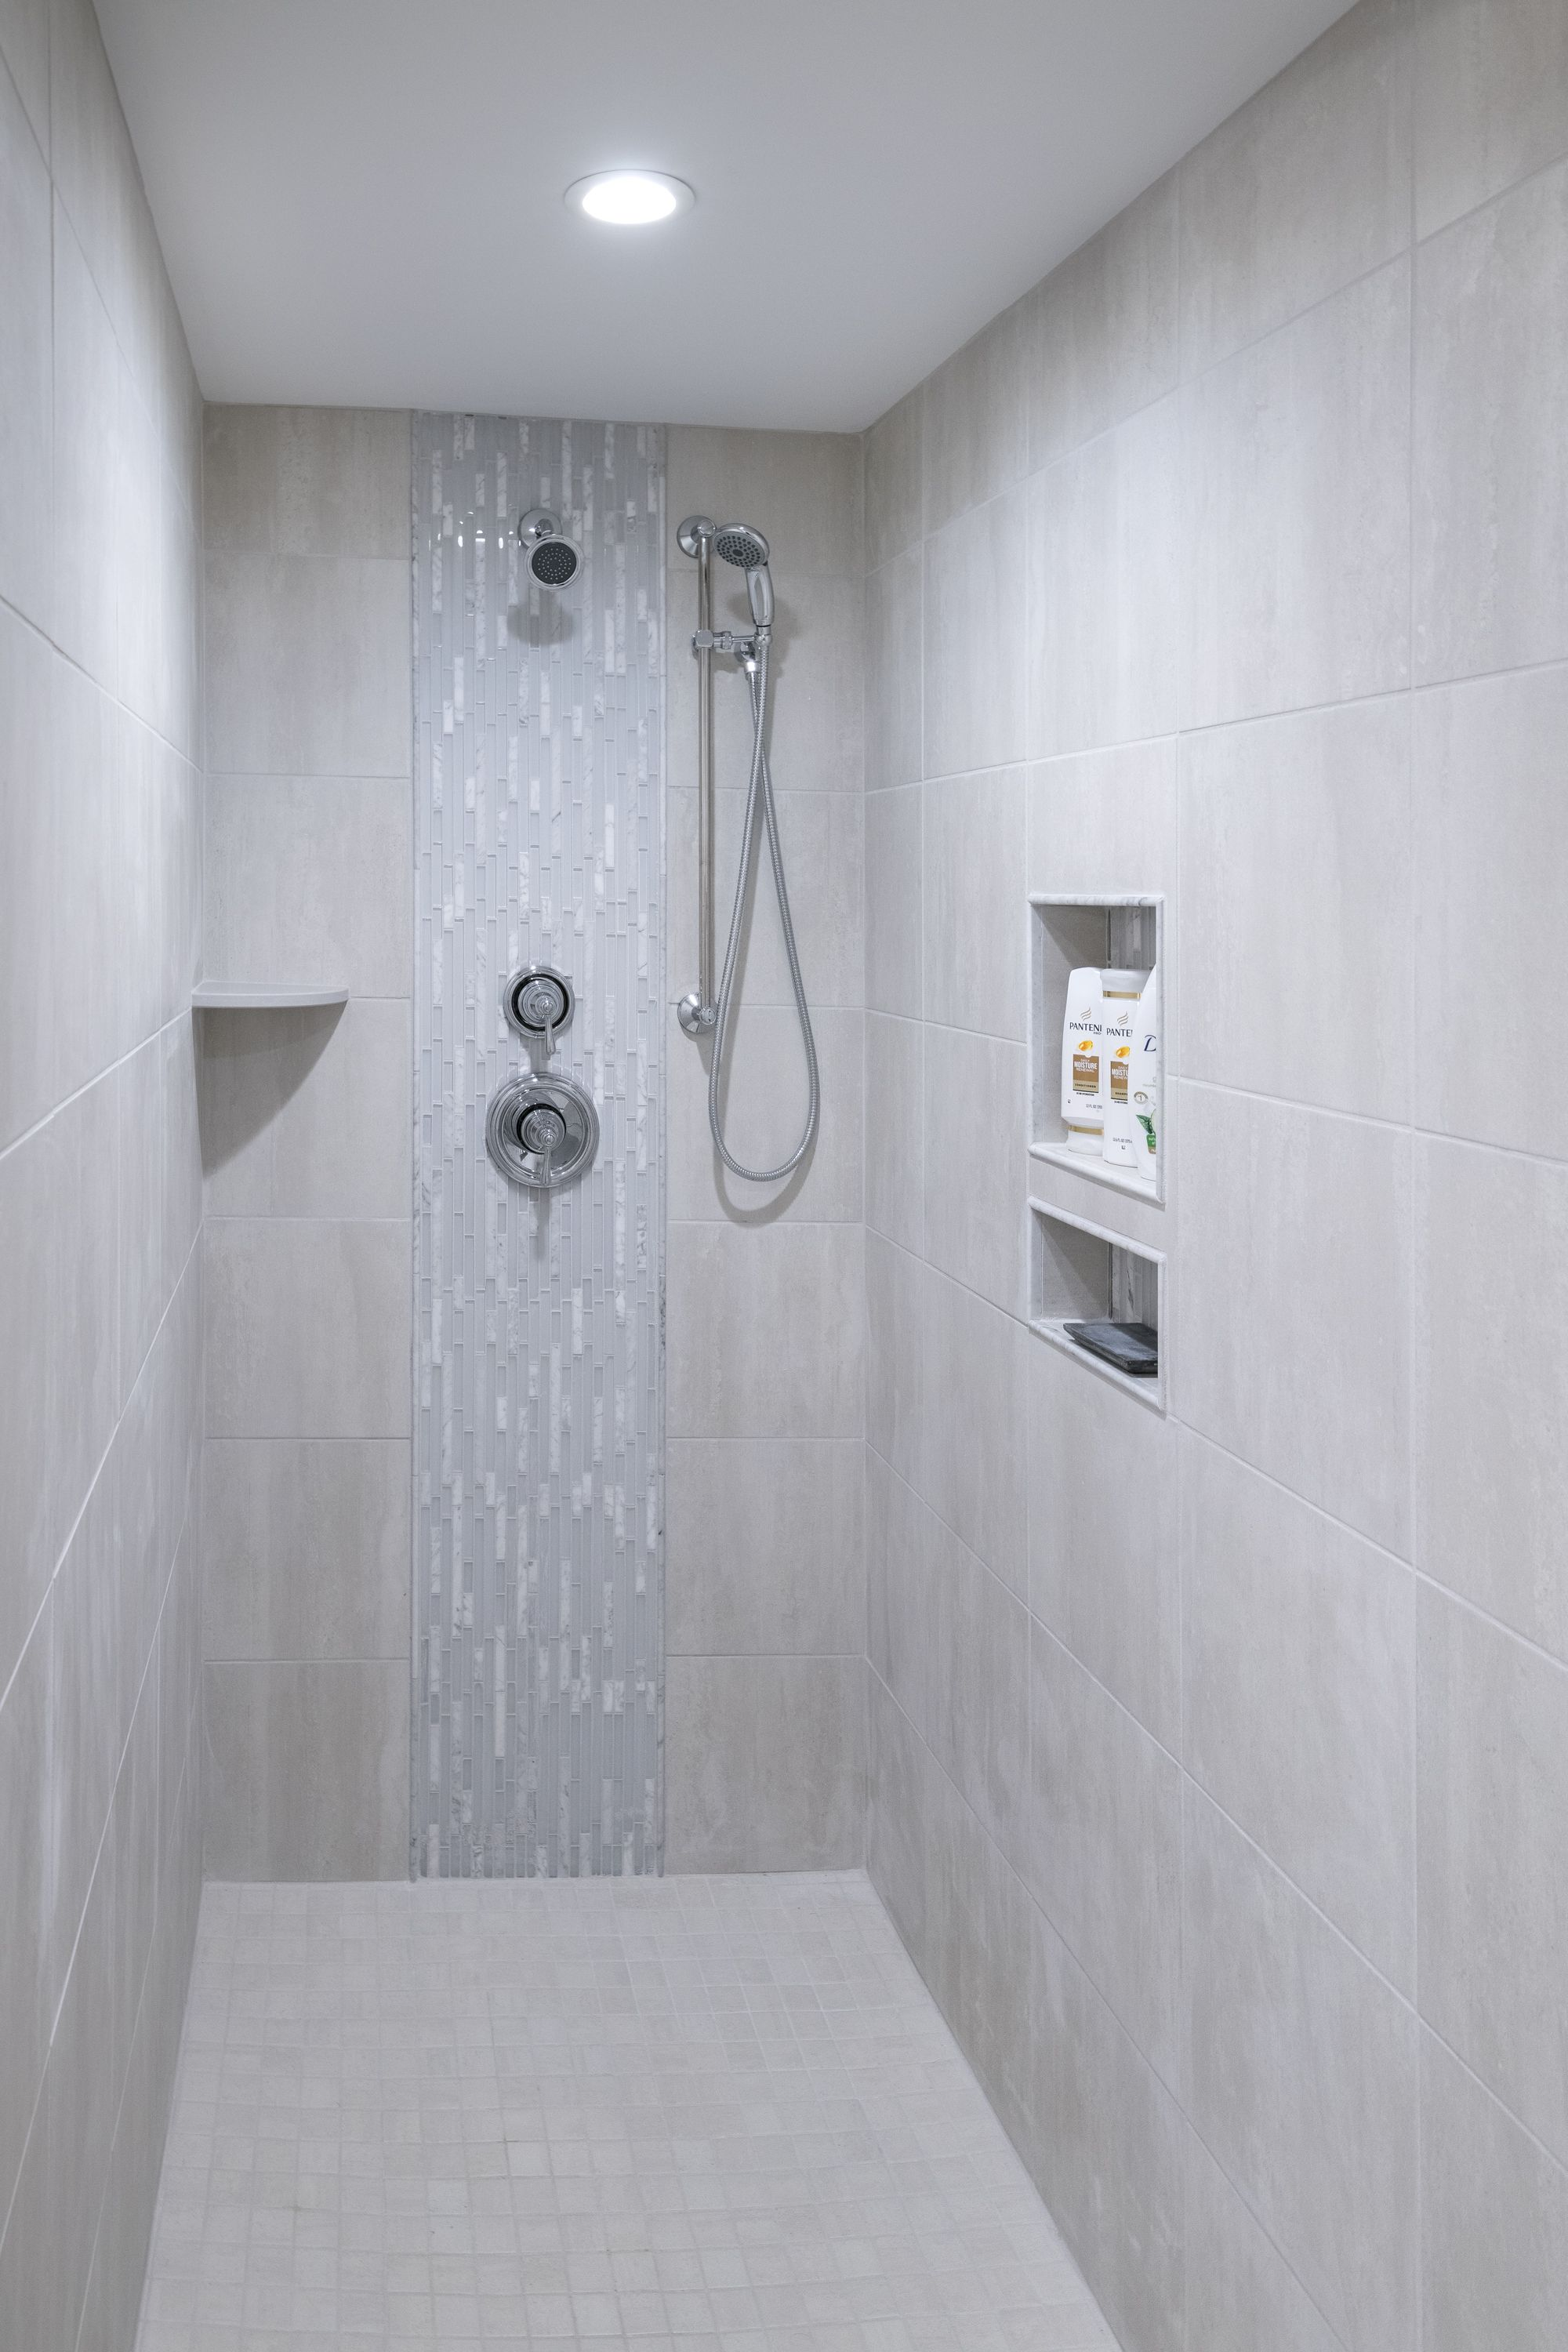 Beautiful shower created in this bathroom renovation by ... on Disabatino Outdoor Living id=23494